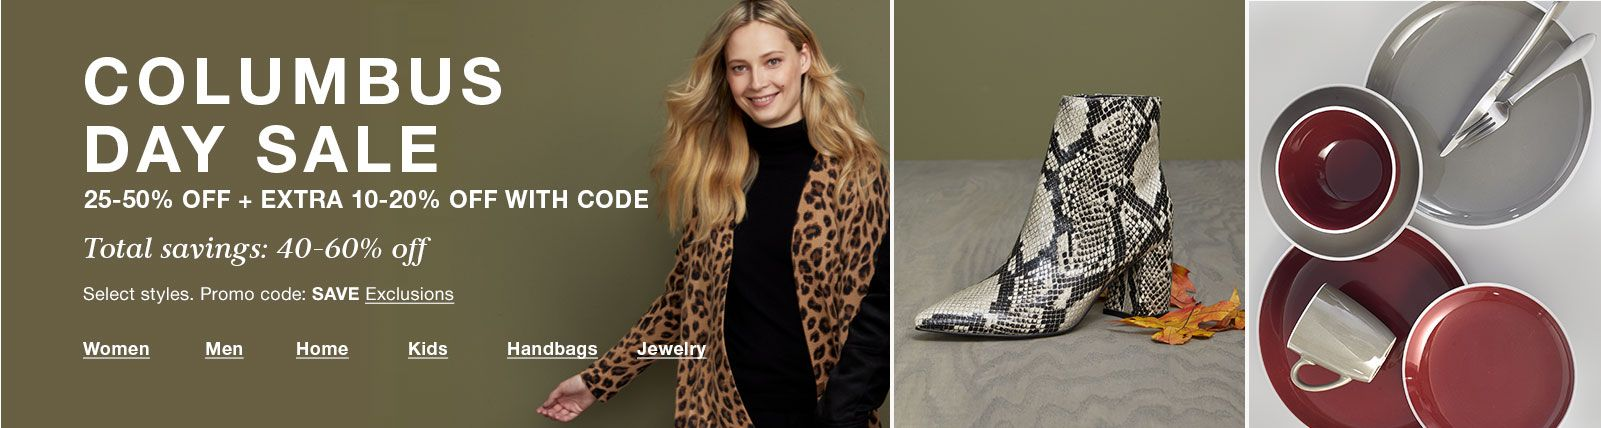 Columbus Day Sale, 25-50 percent off+Extra 10-20 percent off with Code, Total savings, 40-60 percent off, Select styles, Promo code: SAVE Exclusions, Women, Men, Home, Kids, Handbags, Jewelry